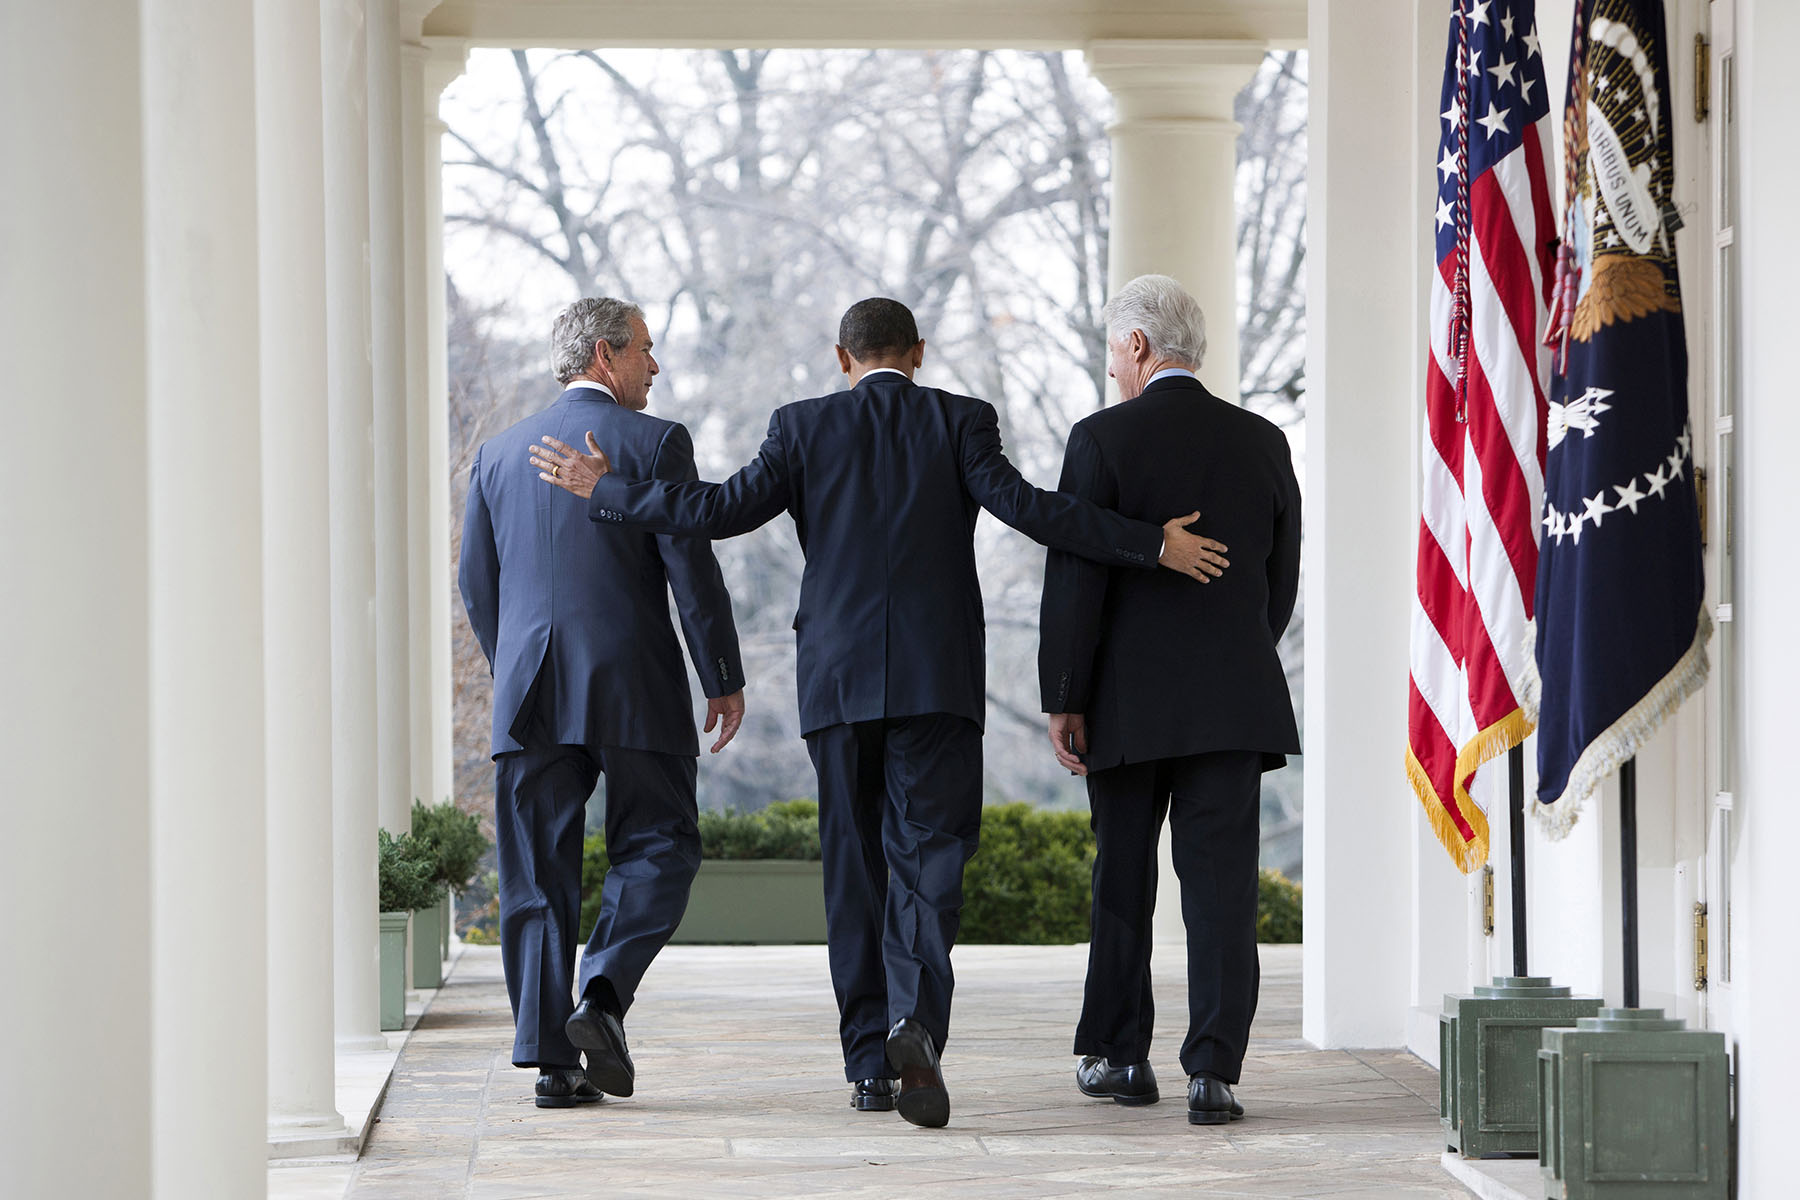 President Barack Obama speaks as former Presidents Bill Clinton and George W. Bush, right, listen in the Rose Garden at the White House in Washington. Obama asked the former presidents to help with U.S. relief efforts in Haiti after the earthquake.